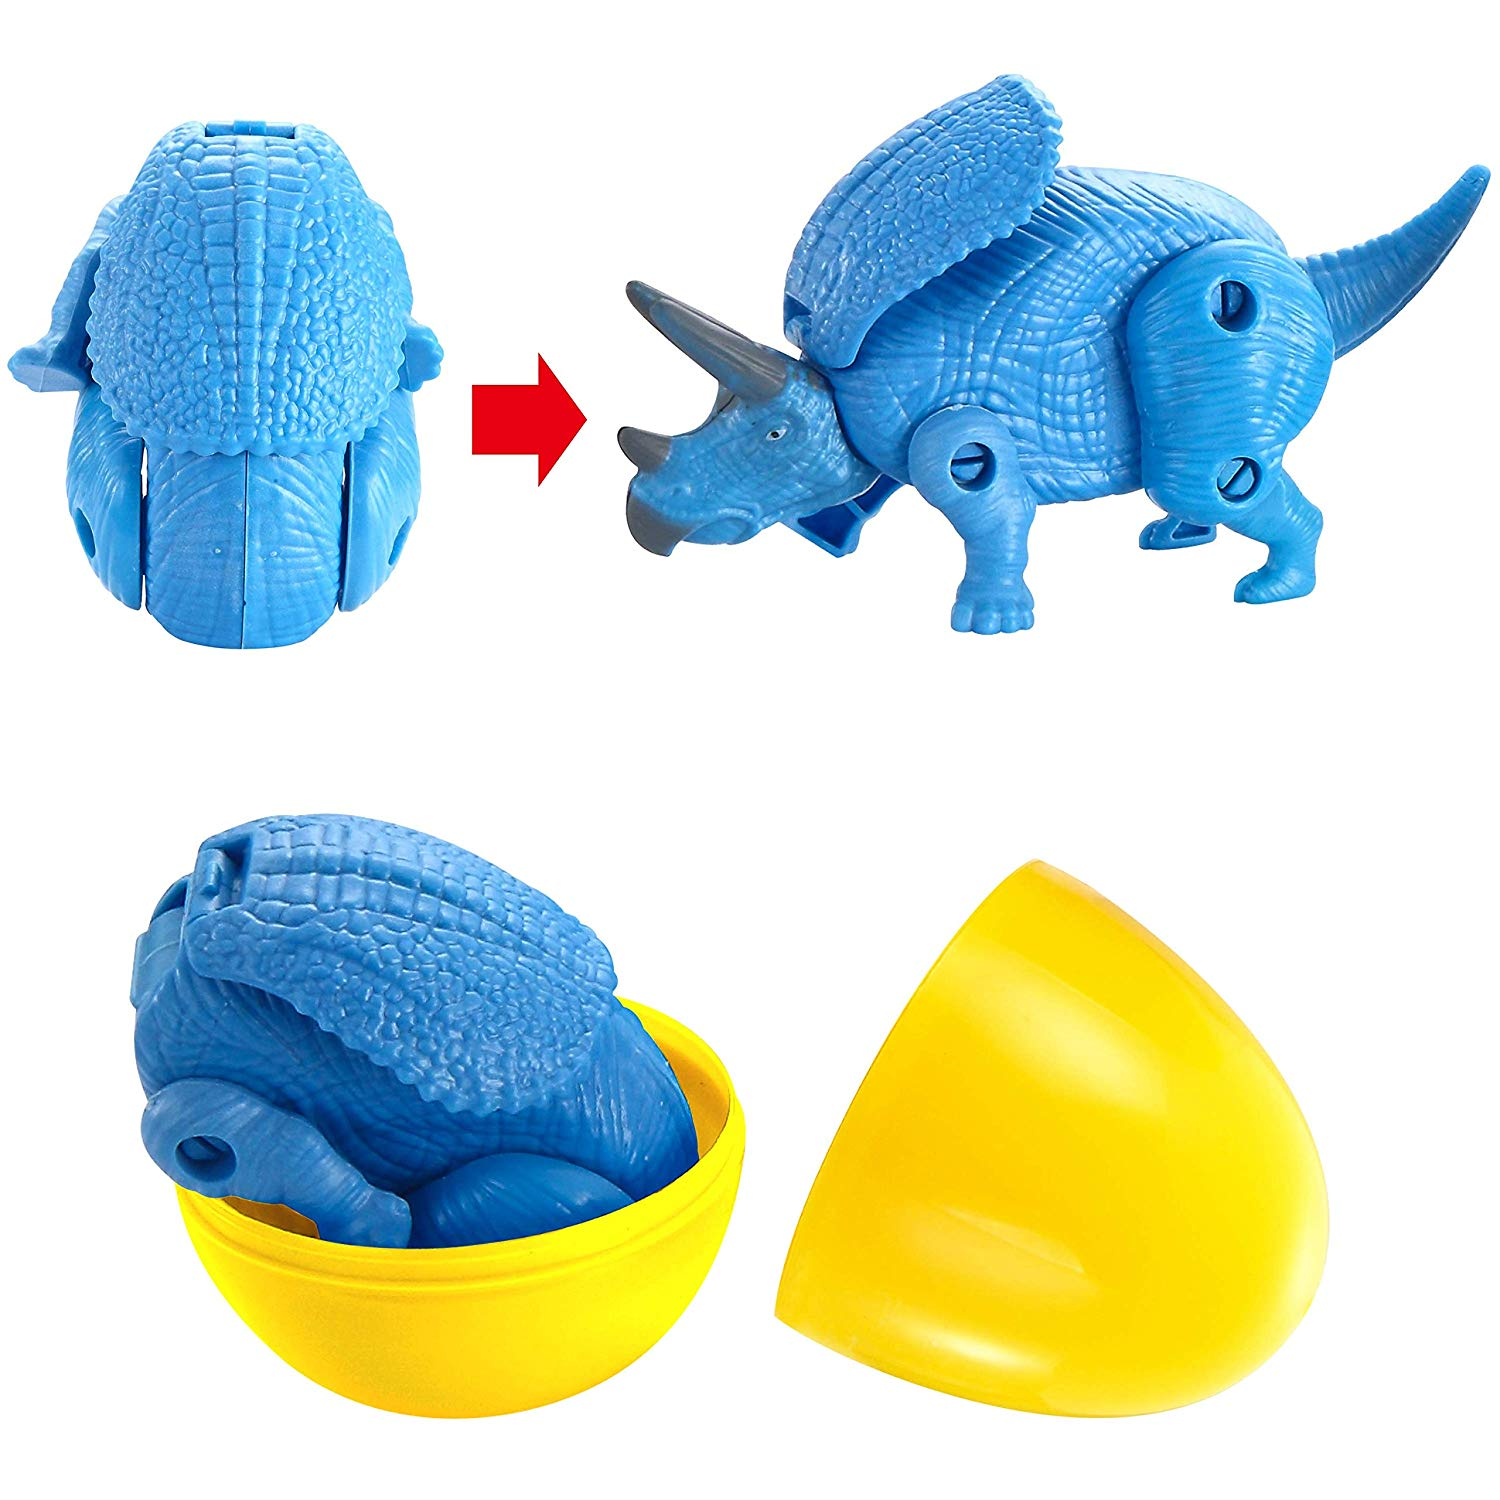 8 Pcs Eggs Filled with Deformable Transforming Dinosaur